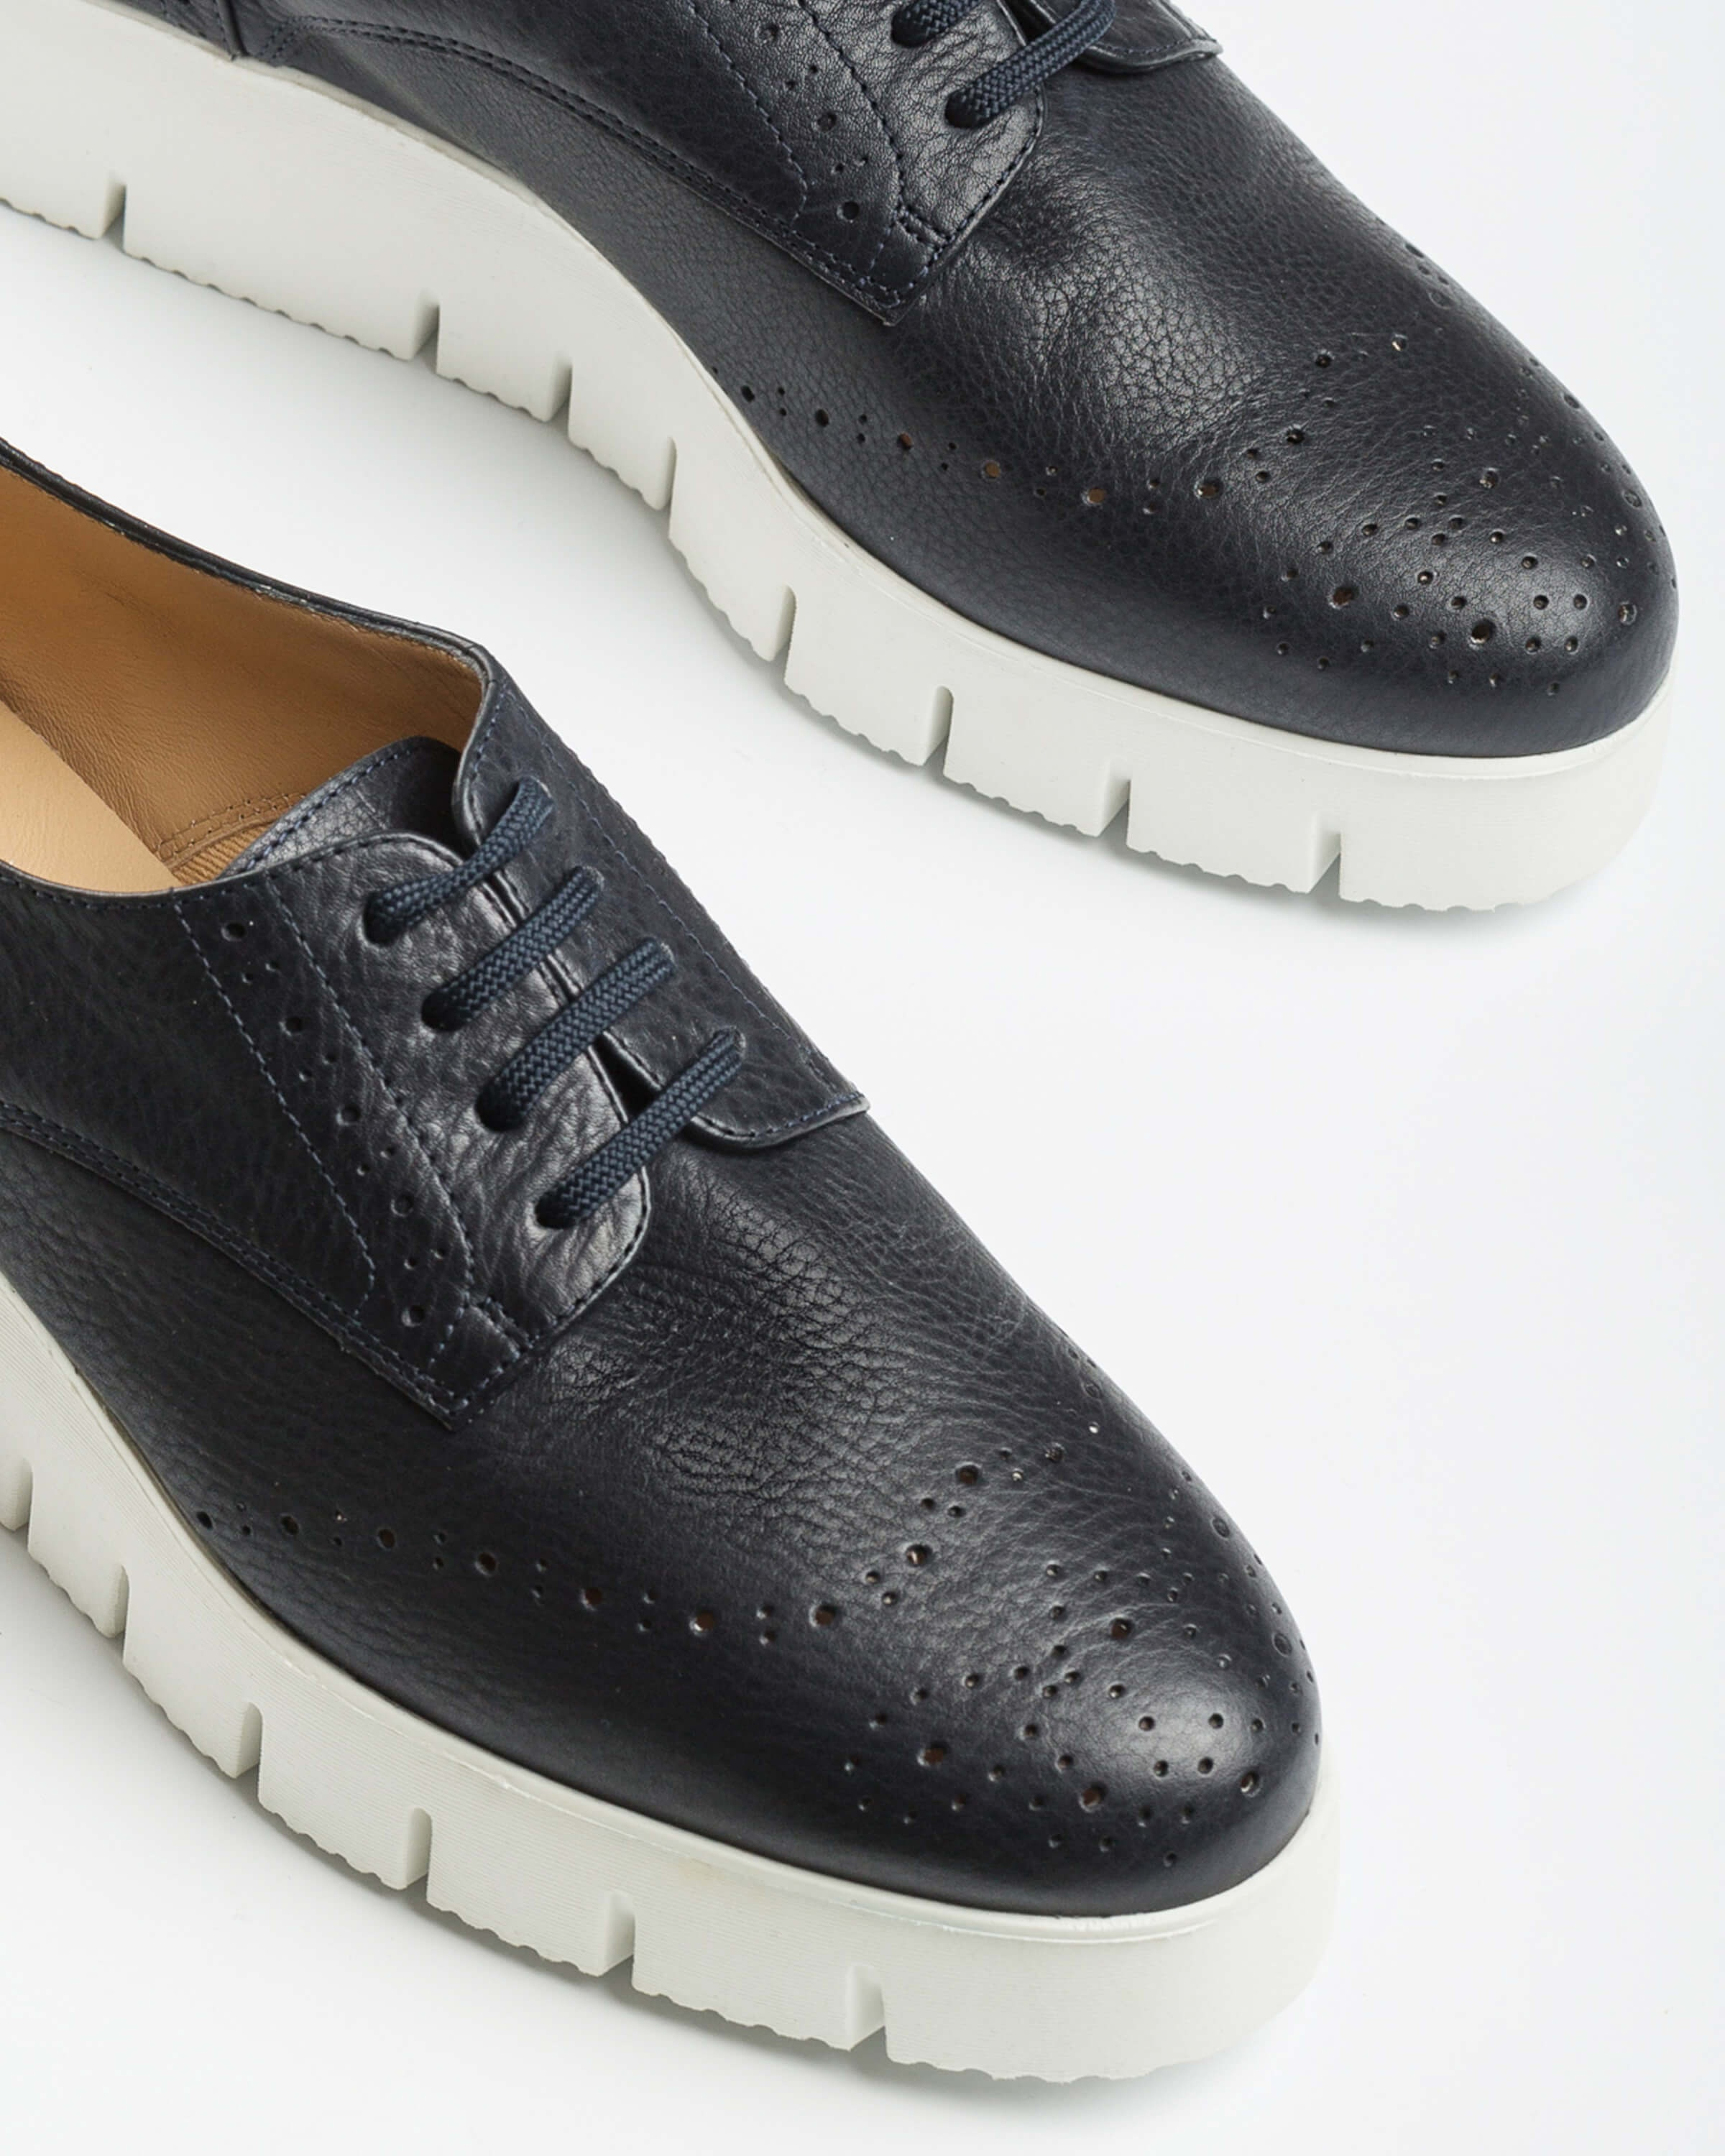 UNISA Perforated leather derby shoes with platform FERRAZ_STY ocean 2